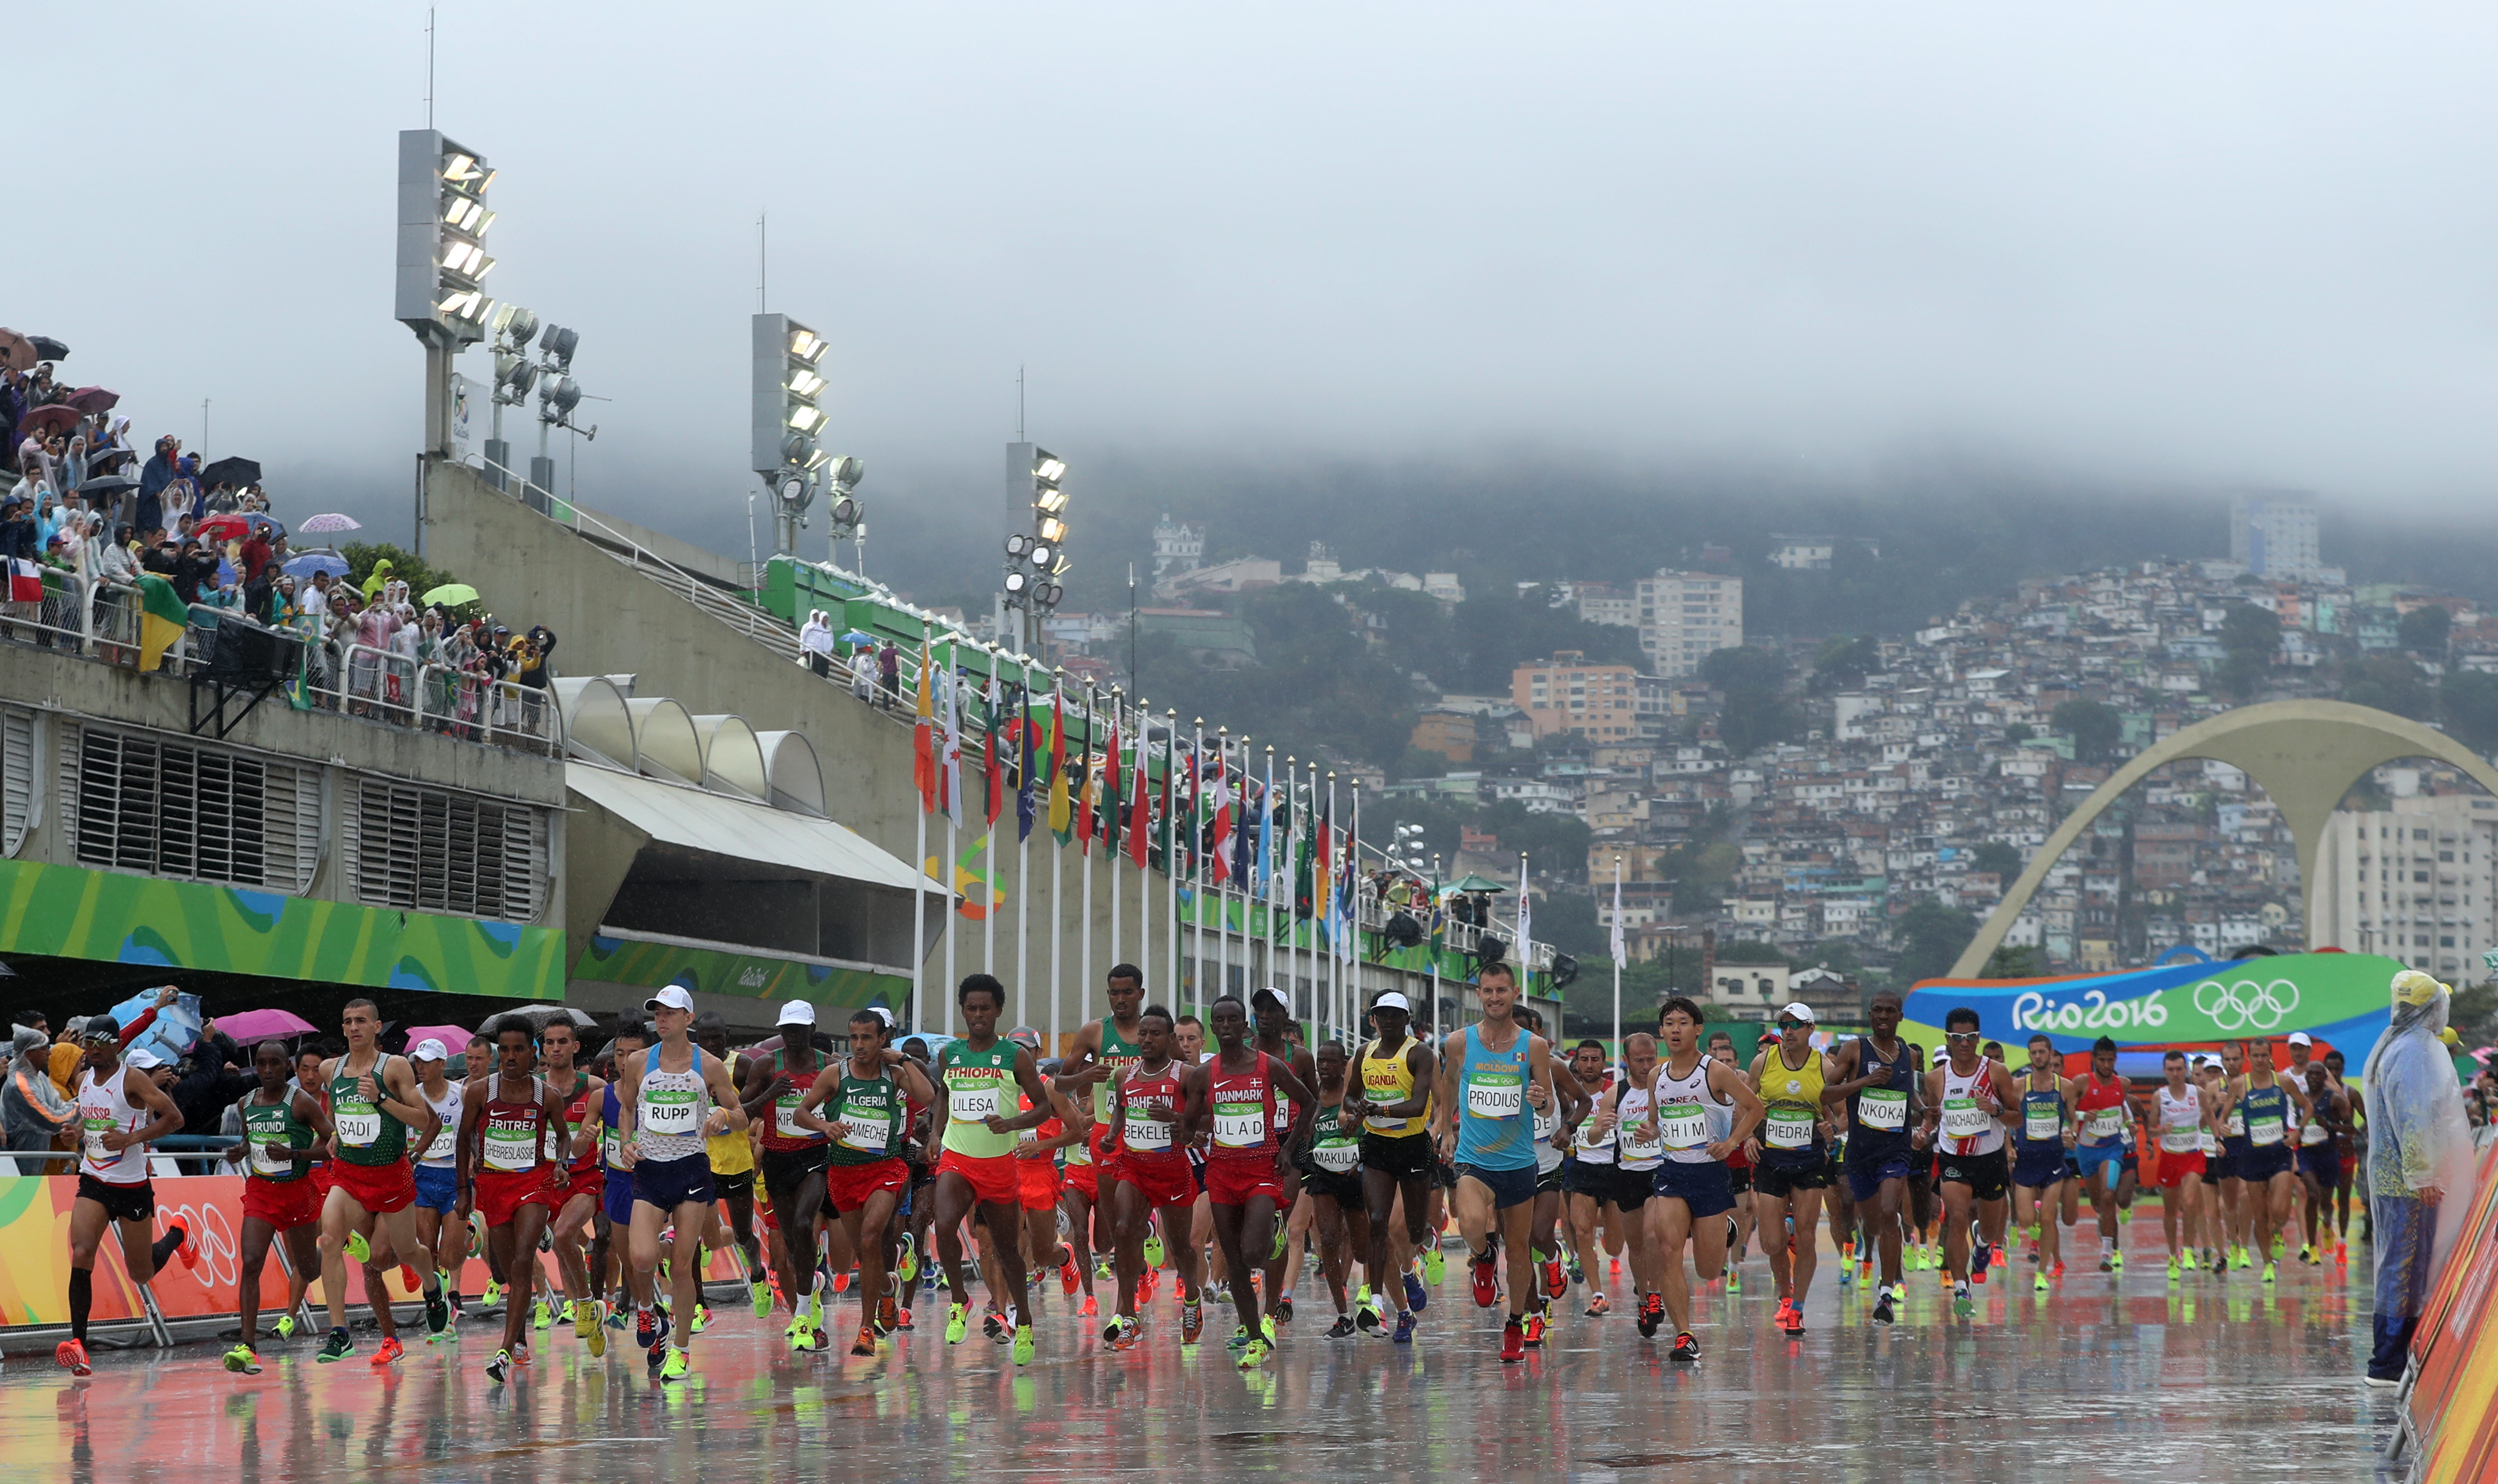 Athletes start to the men's marathon at the 2016 Summer Olympics in Rio de Janeiro, Brazil, Sunday, Aug. 21, 2016. (AP Photo/Petr David Josek)